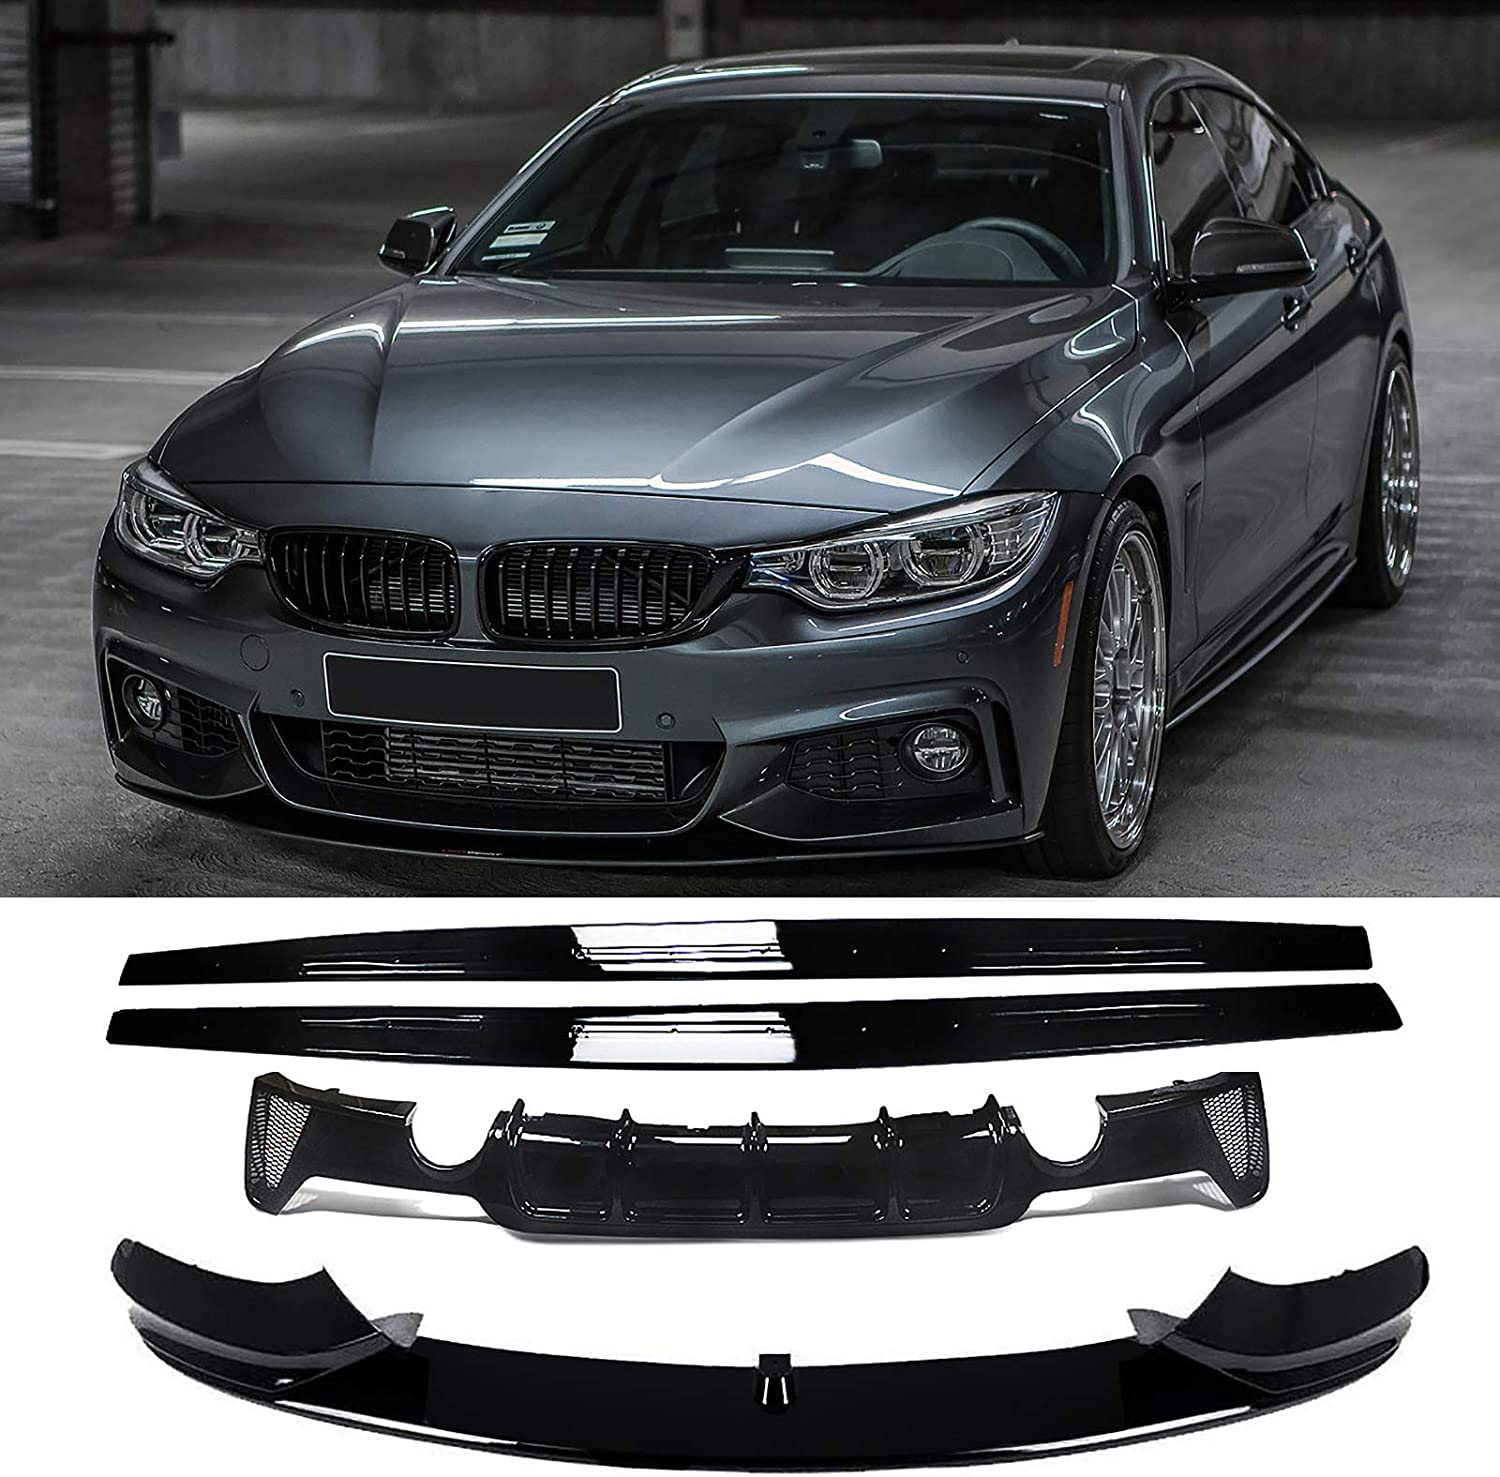 NINTE for 選択 2014-2020 BMW 4 Series F32 Rear Lip Front D F33 F36 国内正規総代理店アイテム